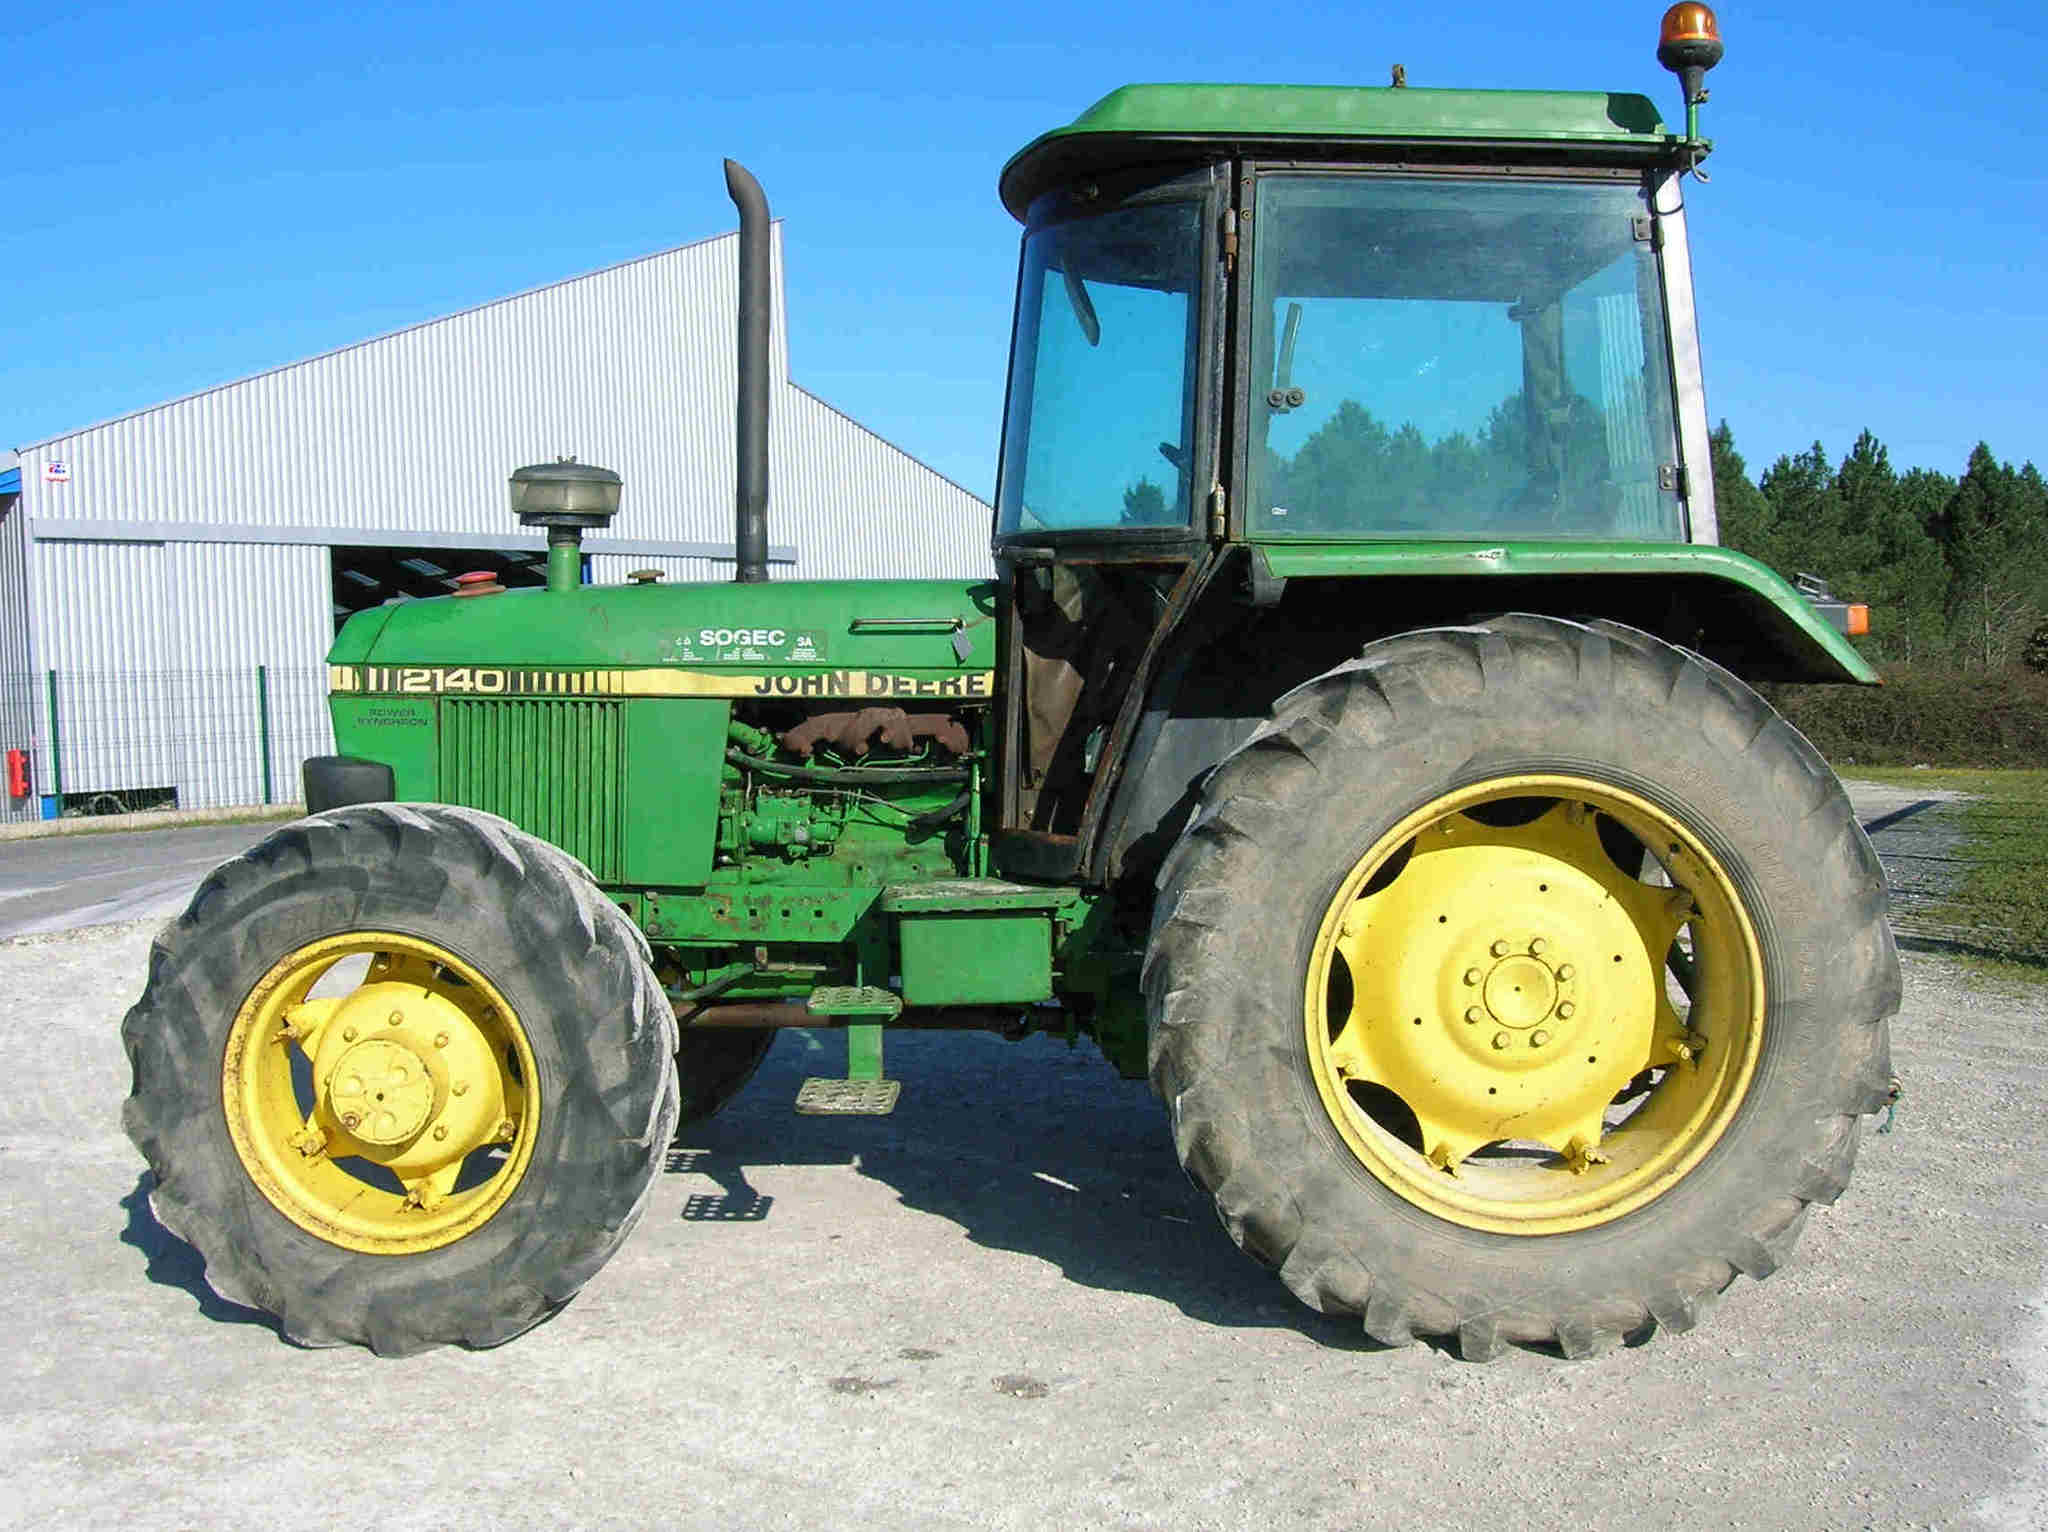 tracteur agricole john deere 2140 vendre sur guenon. Black Bedroom Furniture Sets. Home Design Ideas